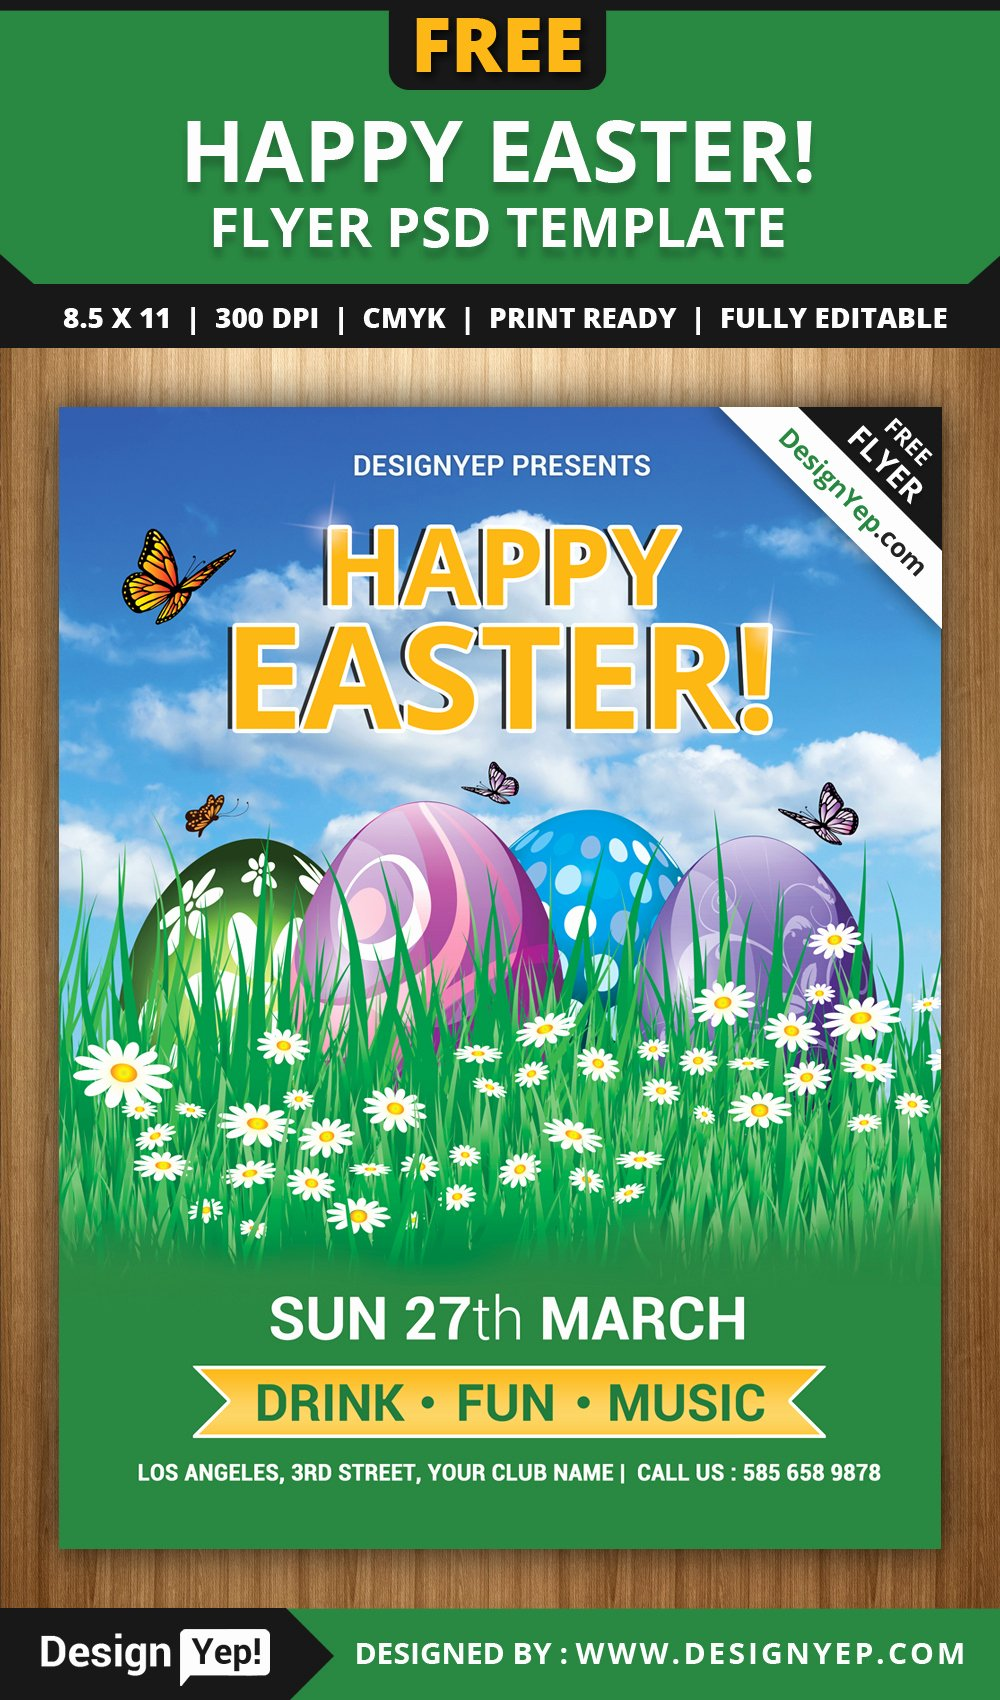 Free Easter Flyer Templates Lovely Free Happy Easter Flyer Psd Template Designyep